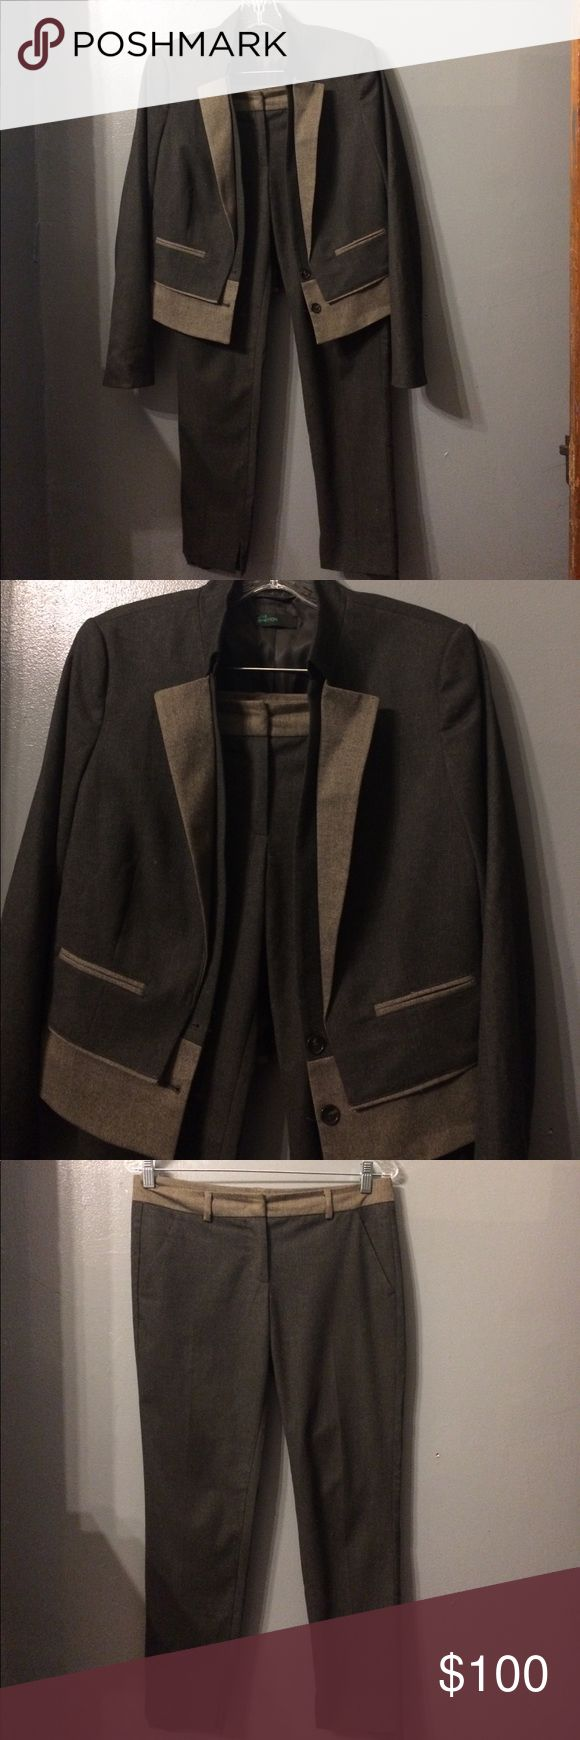 Two-toned Ladies Suit 👓👜👠 Amazing two toned gray suit by United Colors of Benetton. Very sharp, deal closing detail.  Crop trousers, waist length jacket, best paired with white or black cami underneath. Left leg needs hemmed a little, otherwise perfect condition. United Colors Of Benetton Other